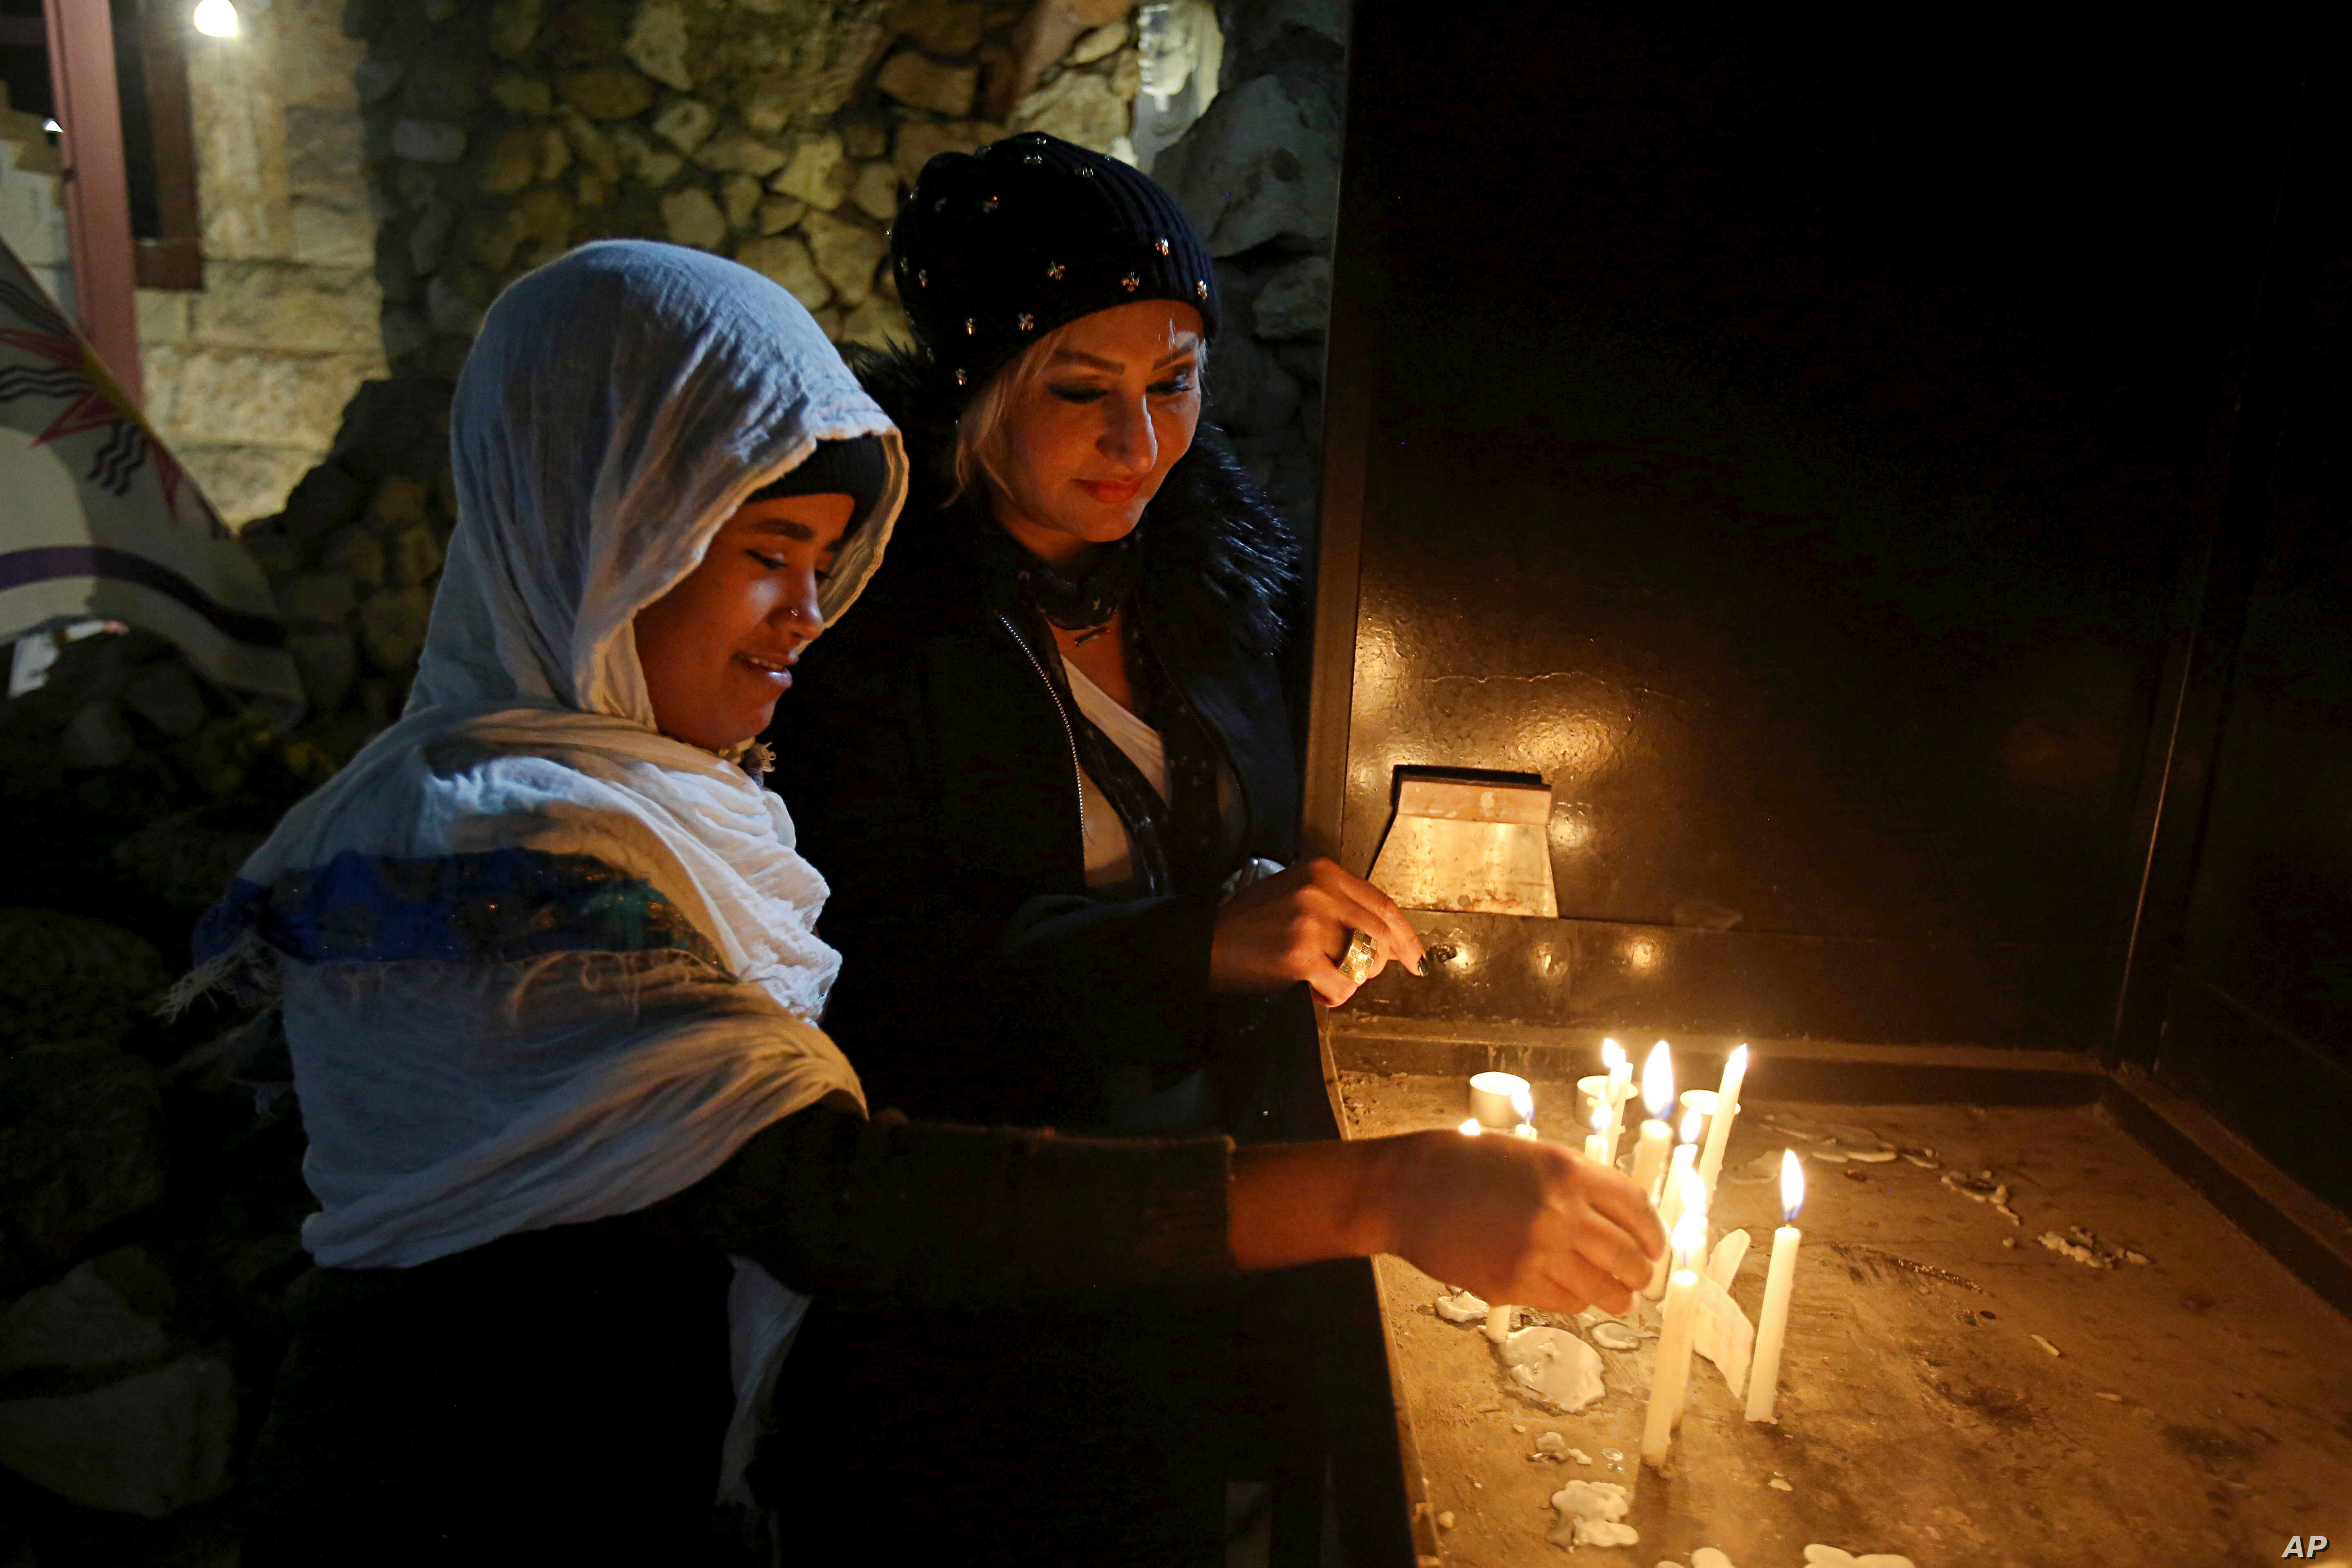 Iraqi Christians light candles after a Christmas Eve Mass in St. Joseph's Church in Baghdad, Iraq, Dec. 24, 2017.